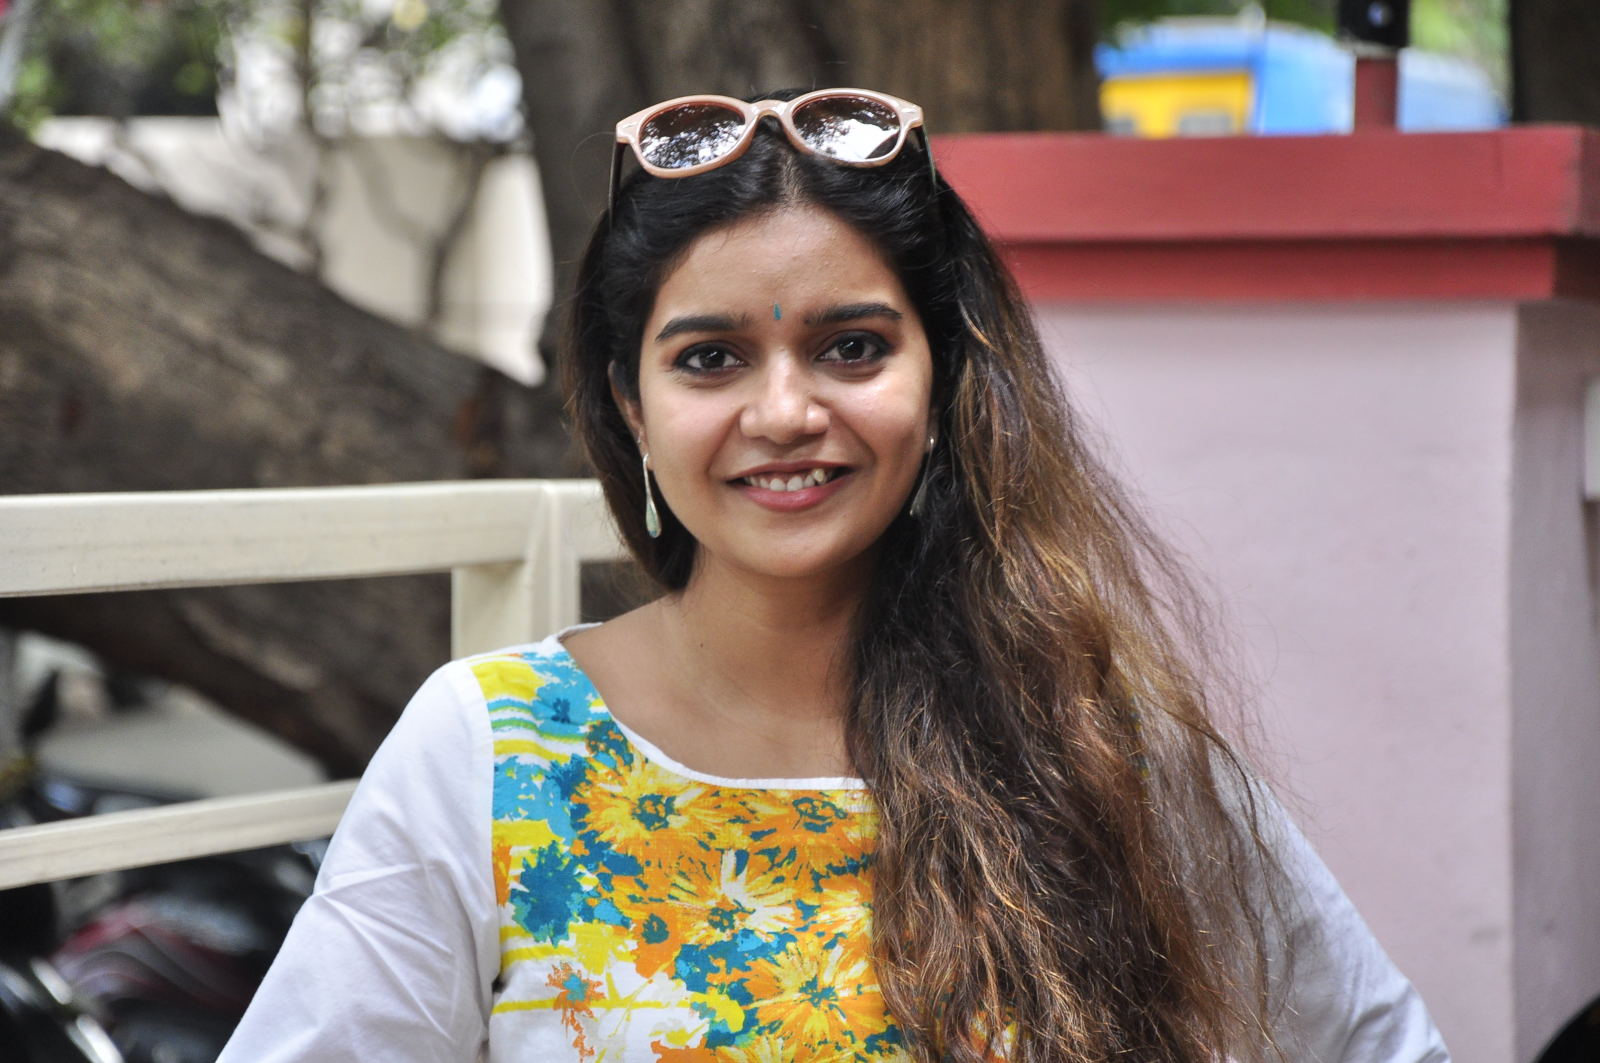 Tripura Movie Actress Swathi Reddy – Migliori Pagine da Colorare